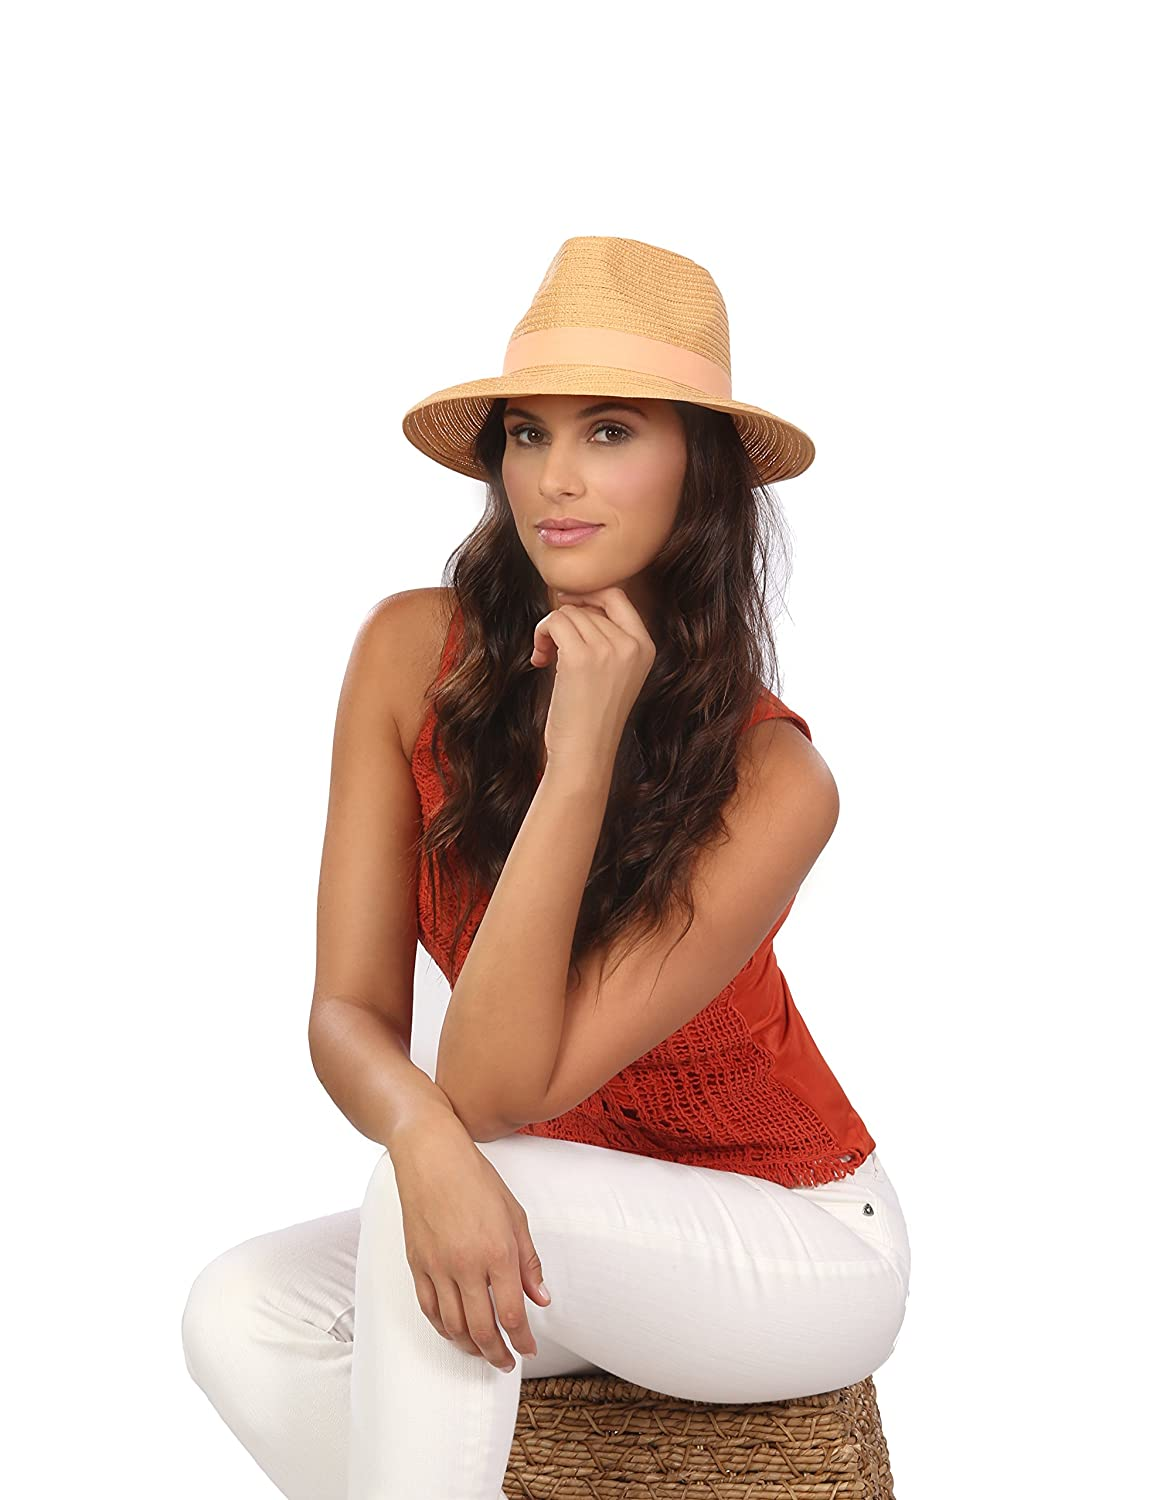 Physician Endorsed Womens Avanti Packable Fedora Sun Hat with Memory Wire Rated UPF 30 for UV Protection